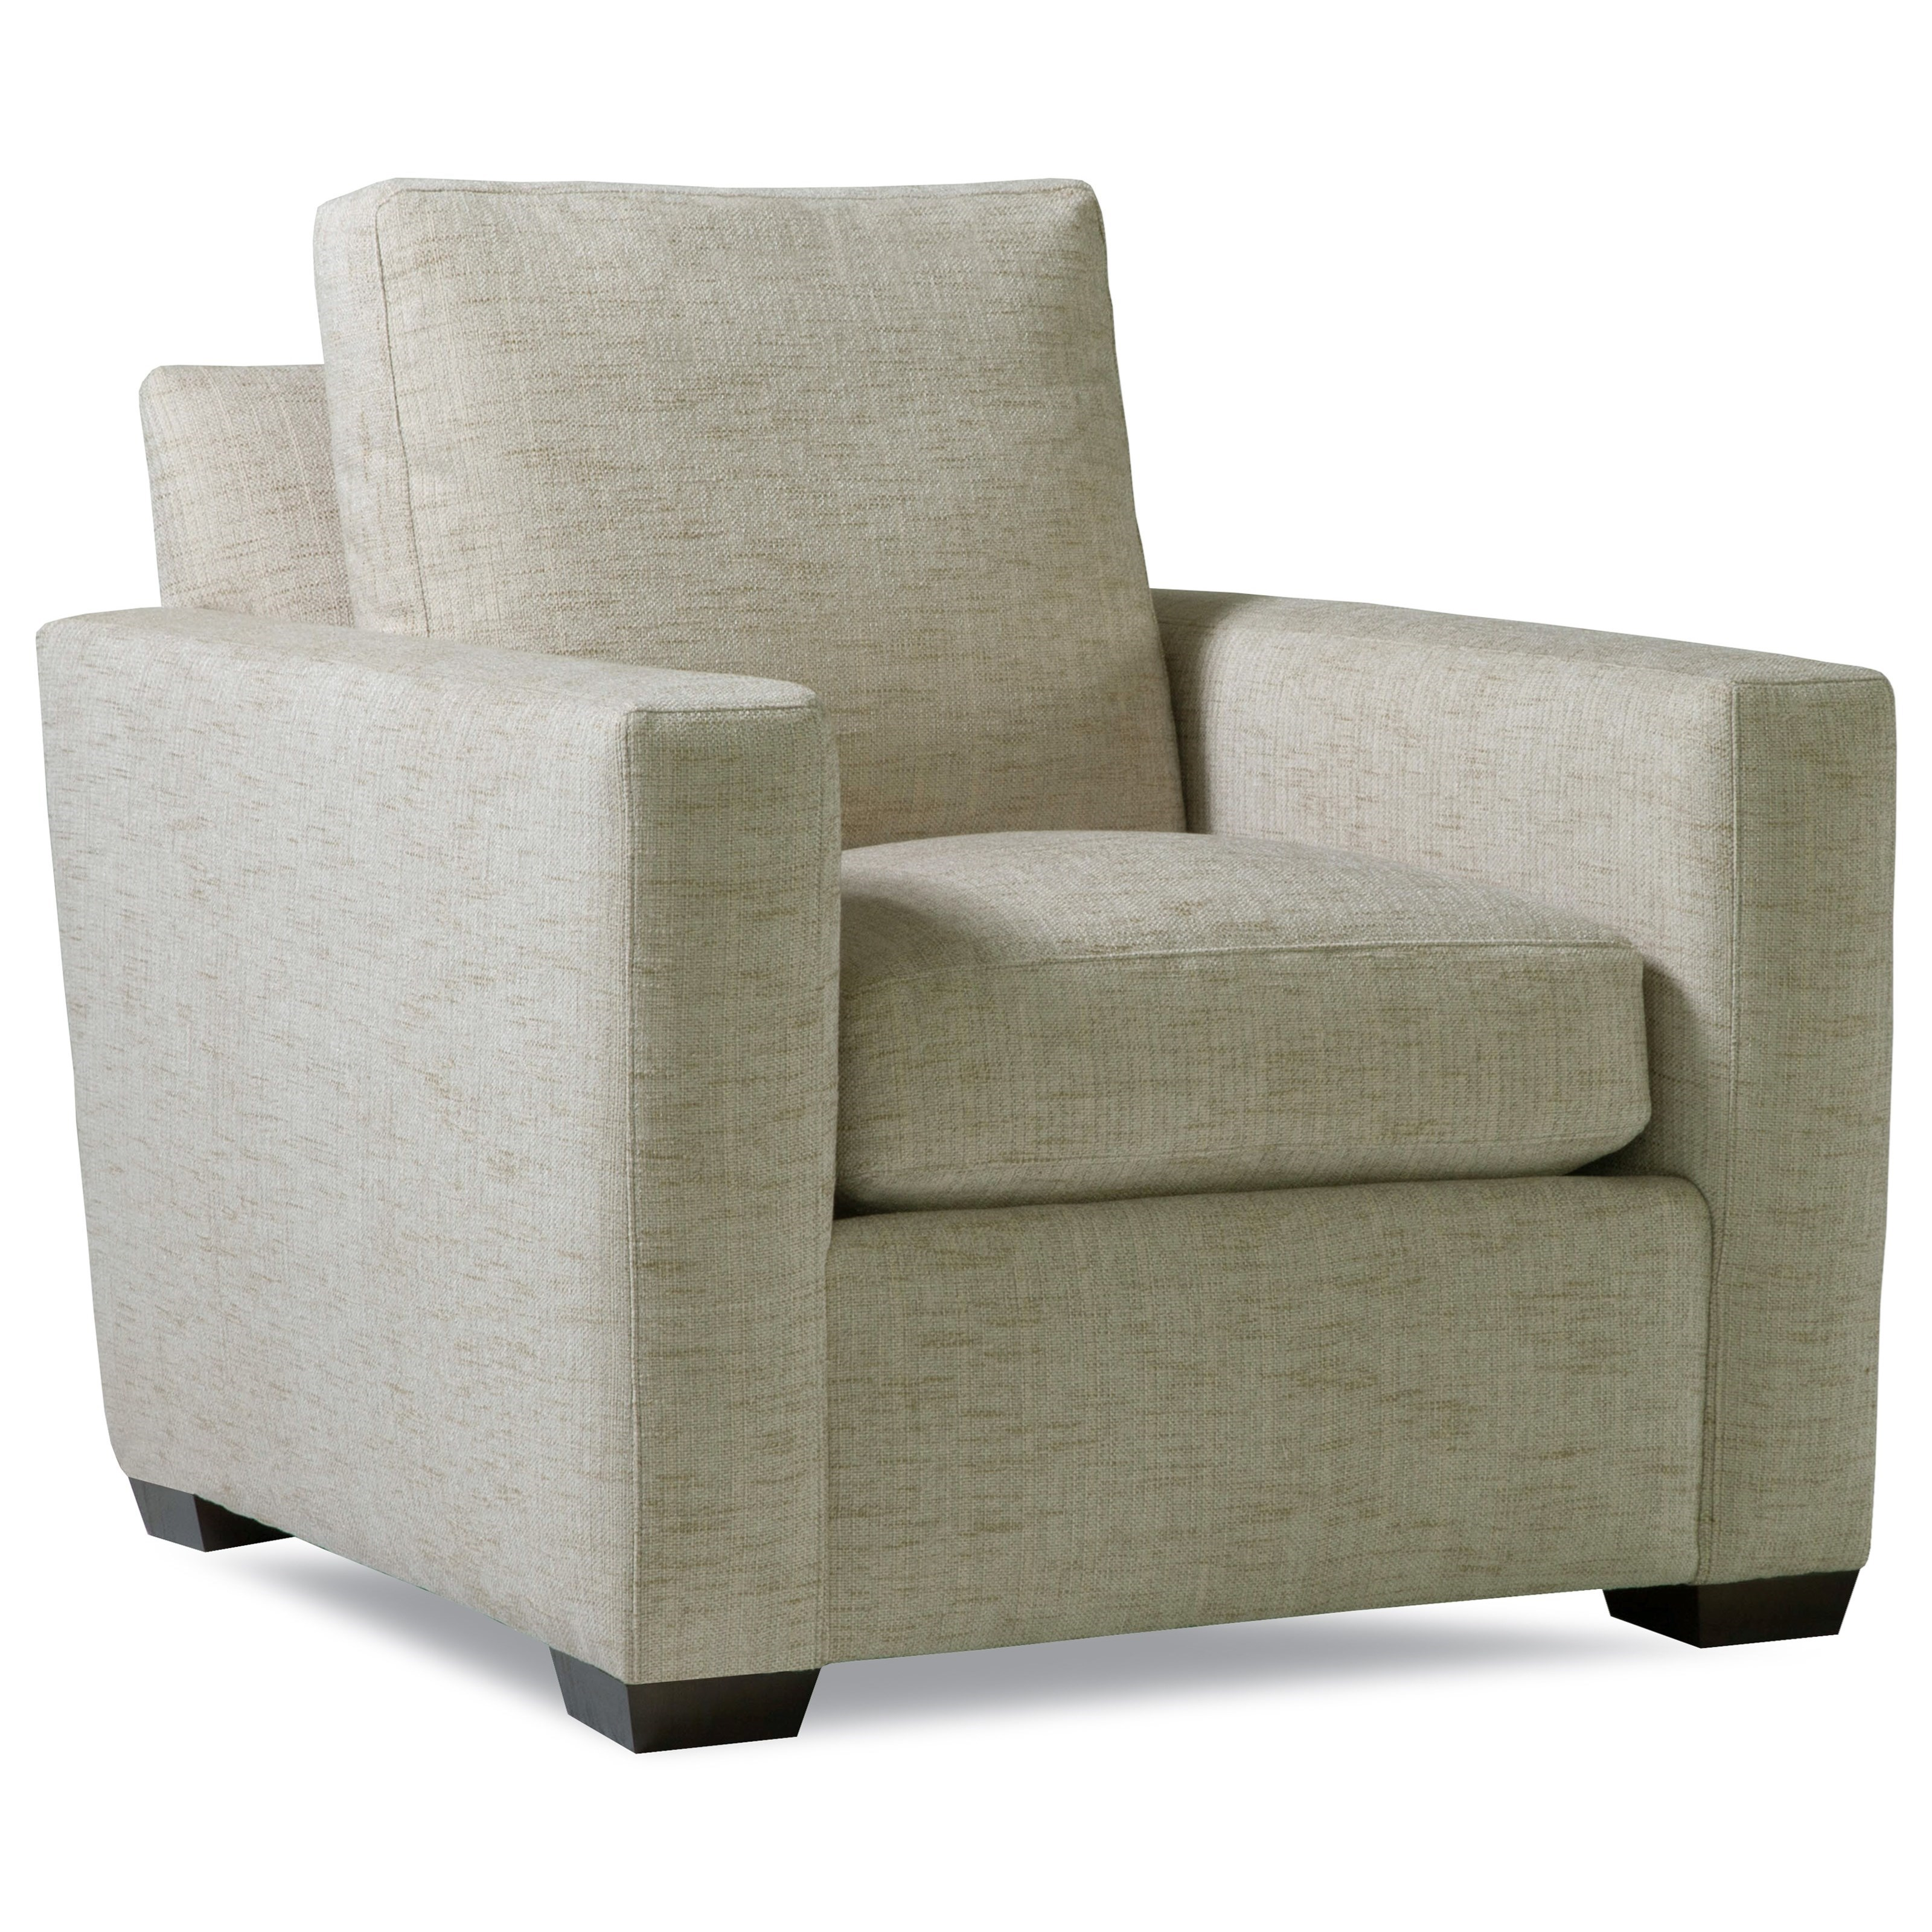 Plush Mod Chair w/ Track Arms by Huntington House at Belfort Furniture